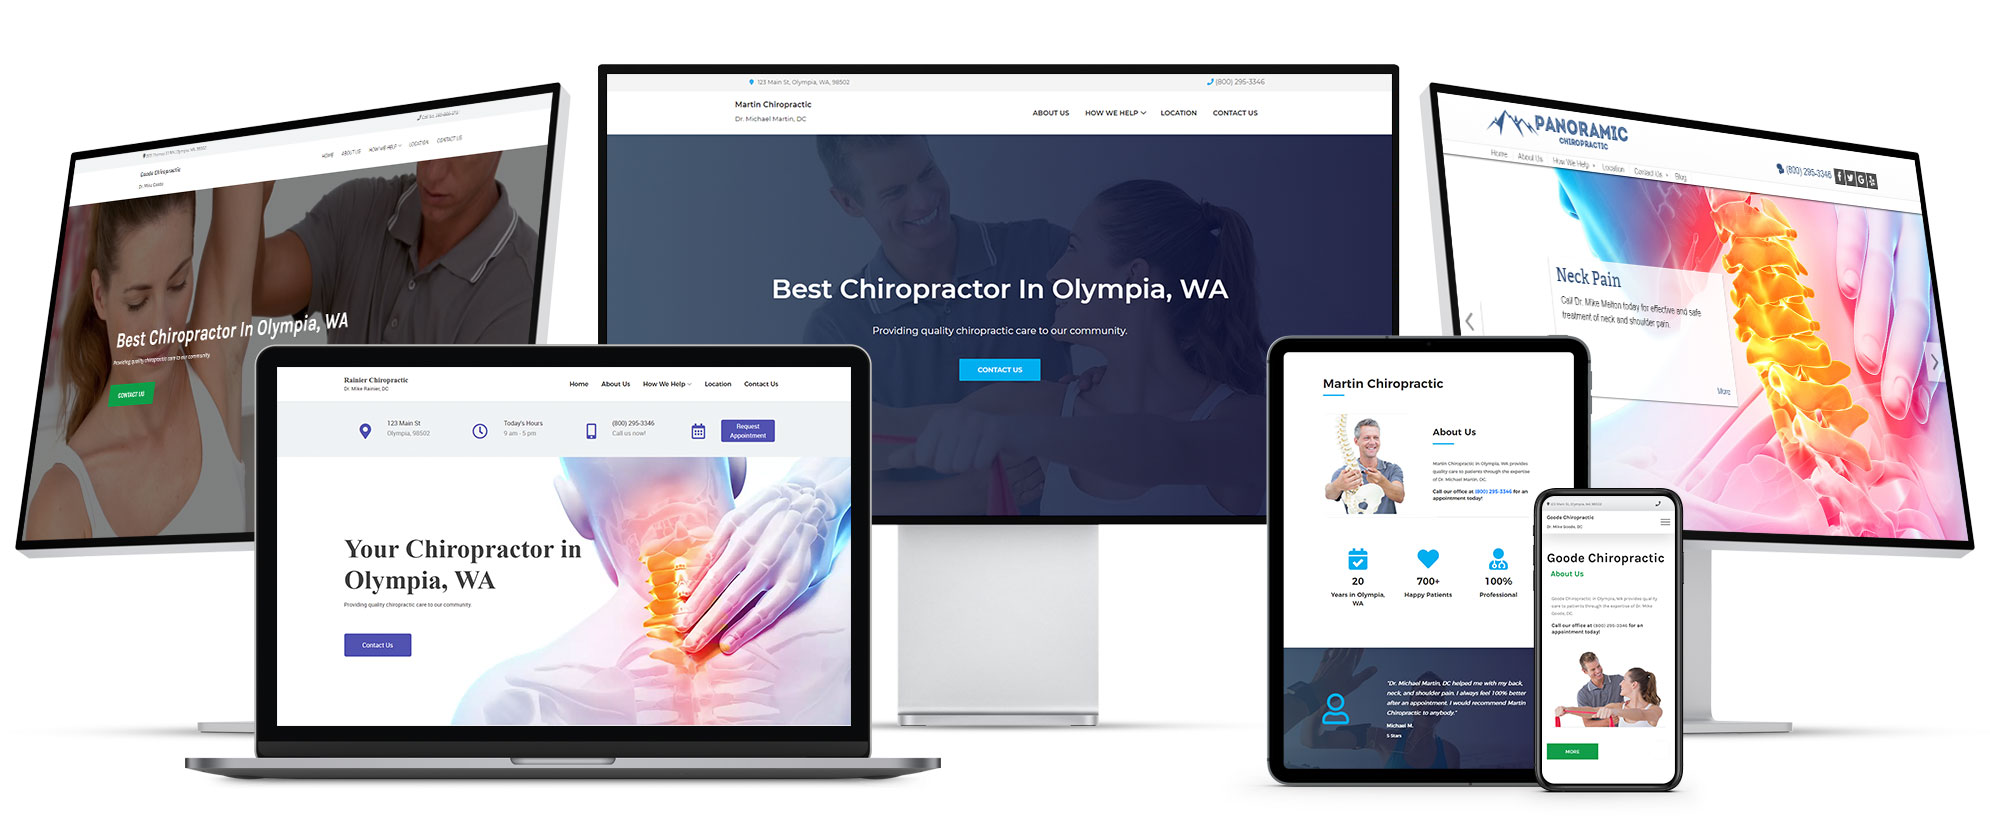 Start with the best chiropractic website